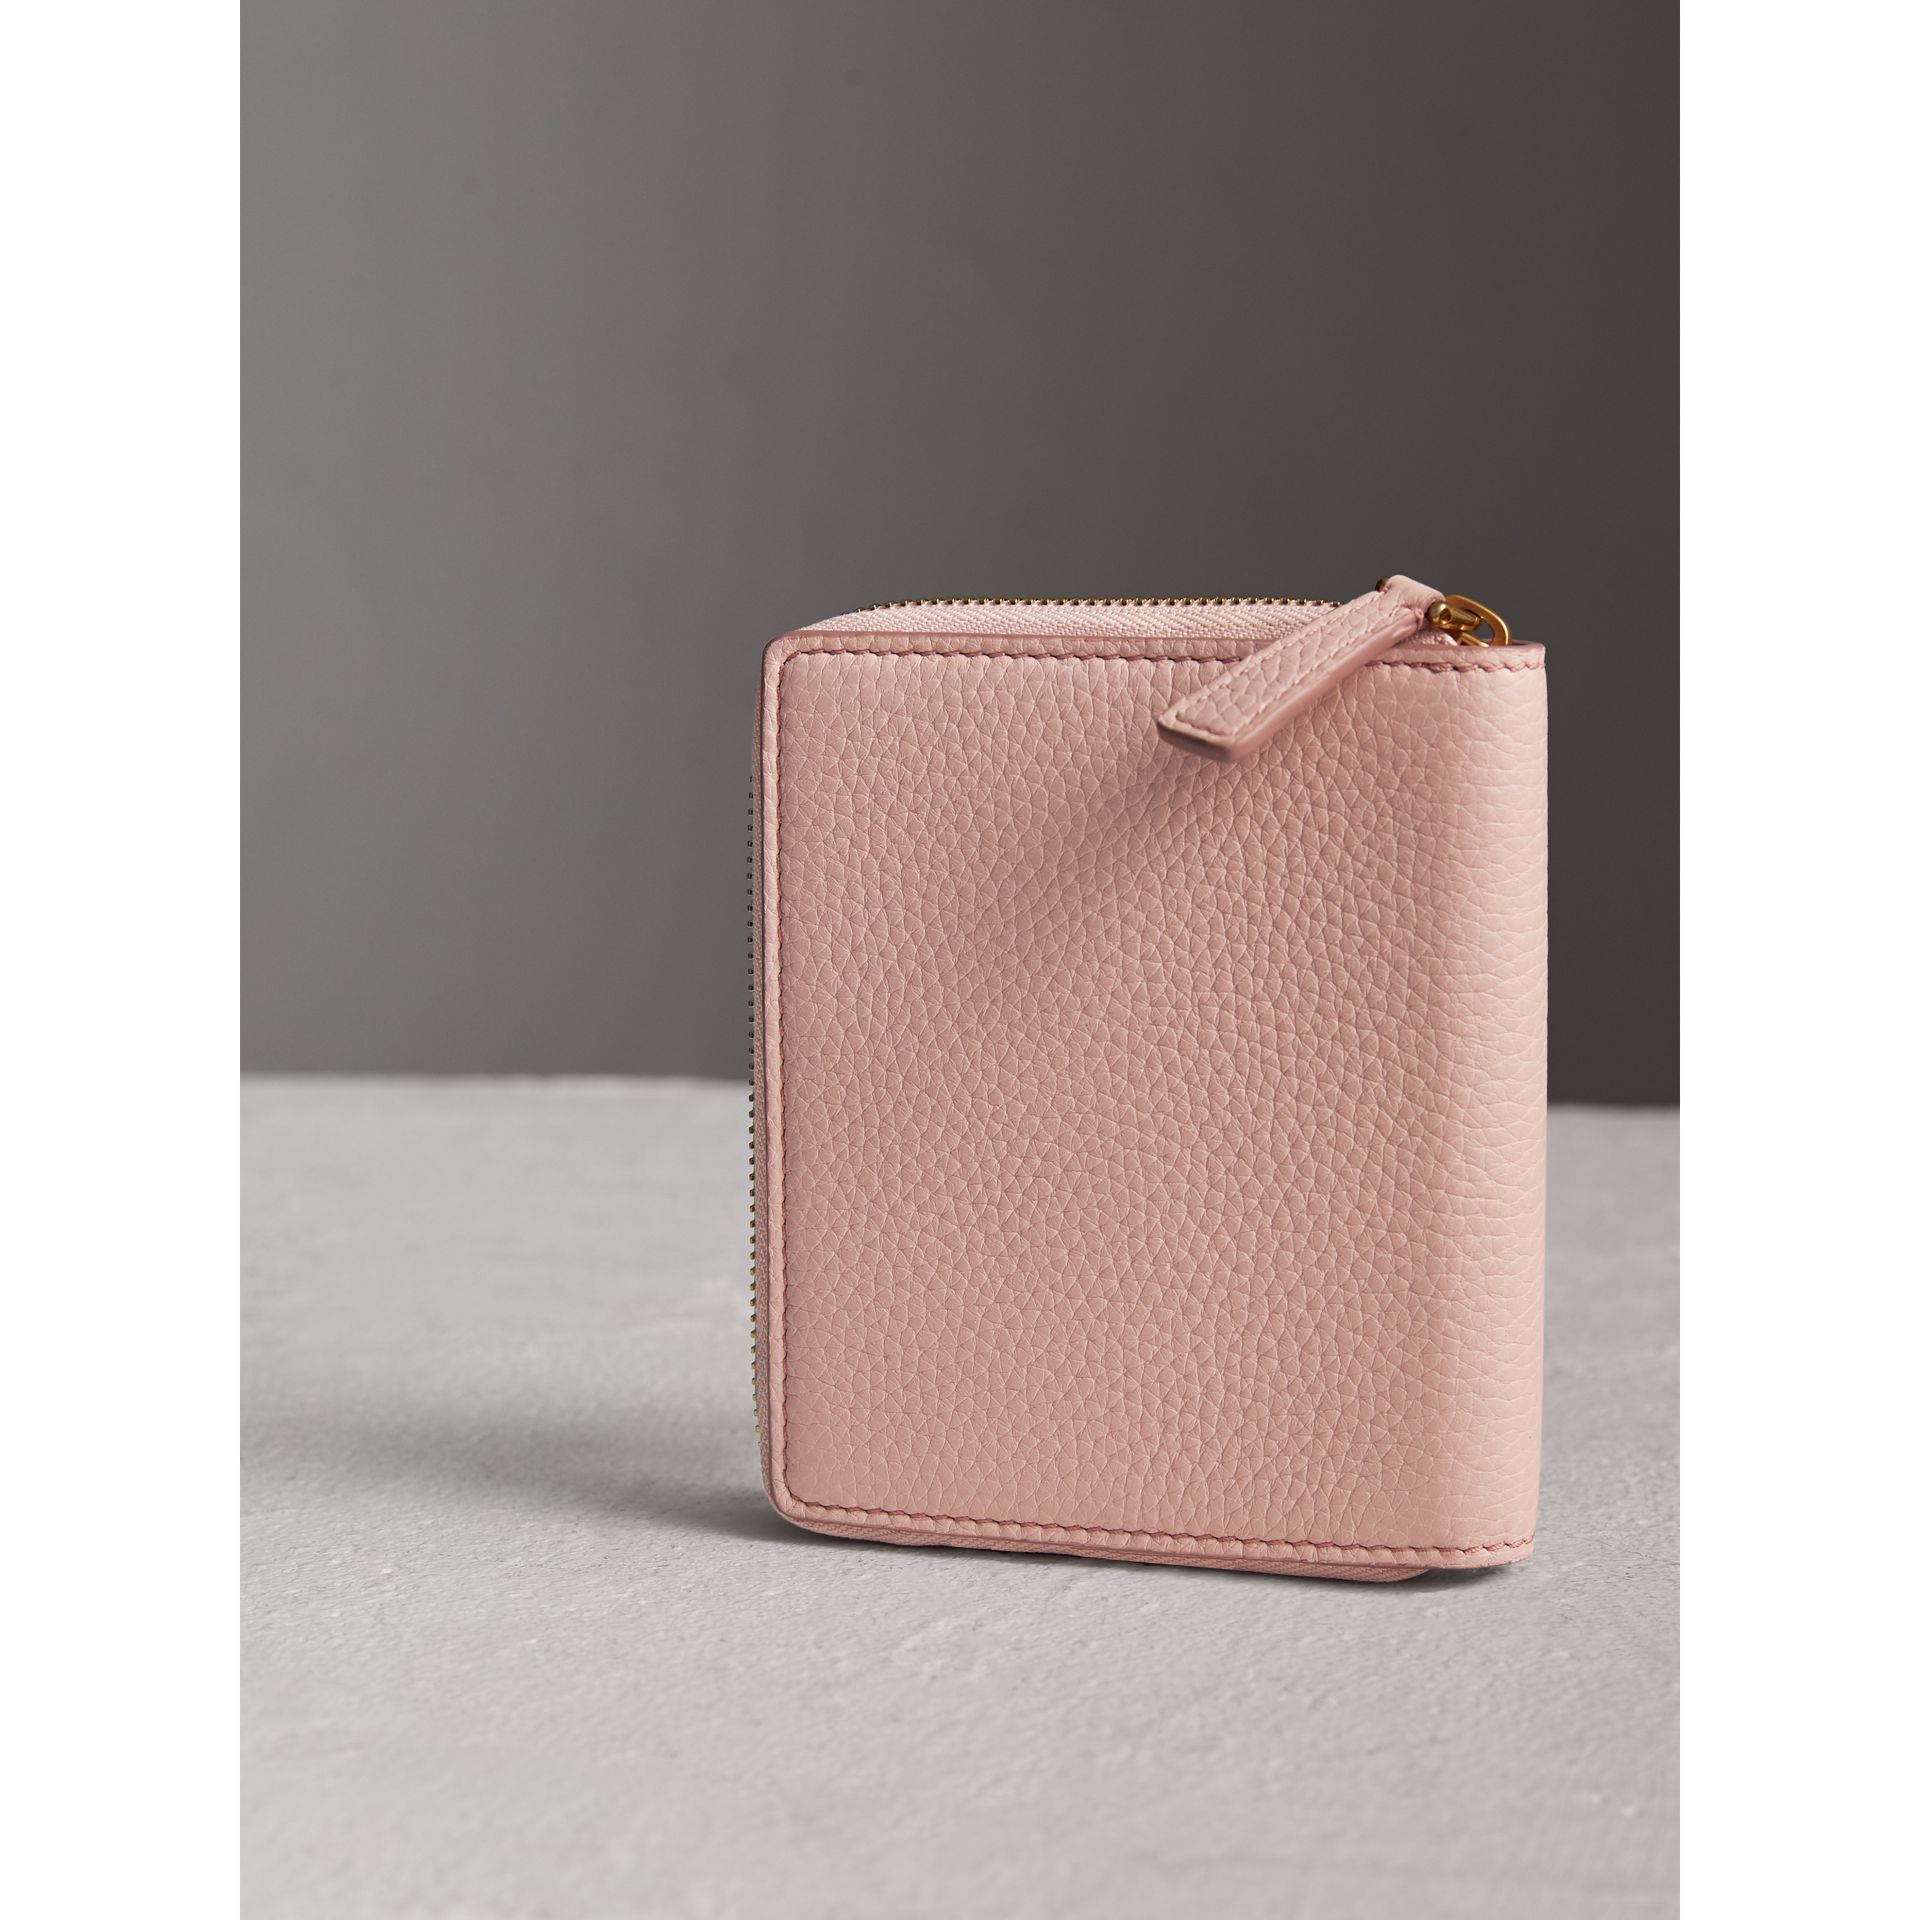 Embossed Grainy Leather Ziparound A6 Notebook Case in Pale Ash Rose | Burberry Canada - gallery image 2